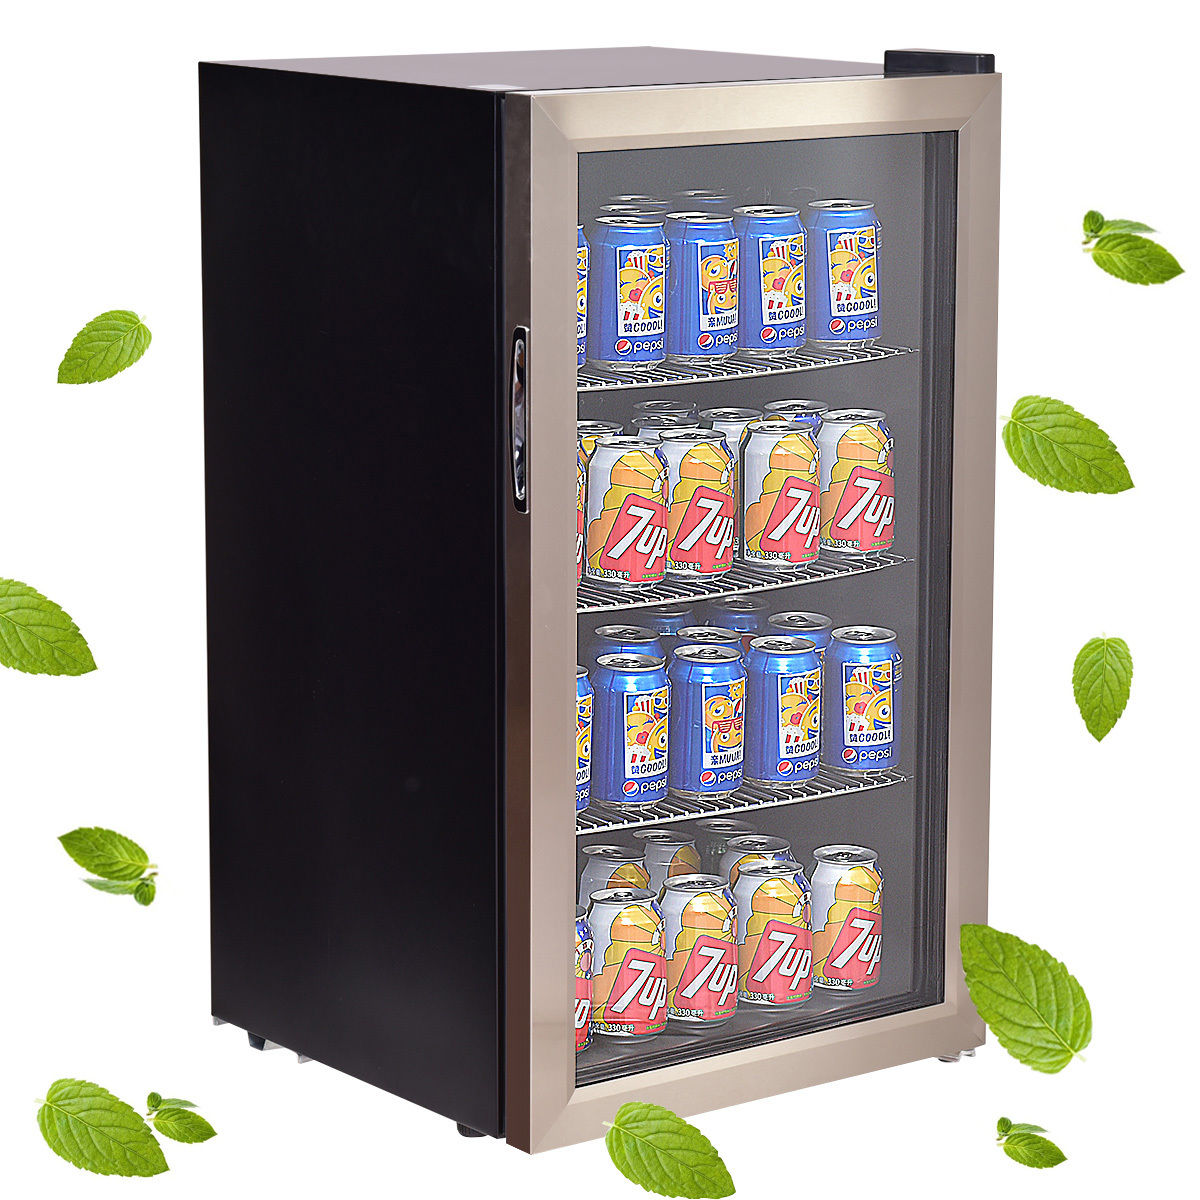 Wine Refrigerator Reviews >> Costway 120 Can Beverage Refrigerator Beer Wine Soda Drink Cooler Mini Fridge Glass Door ...